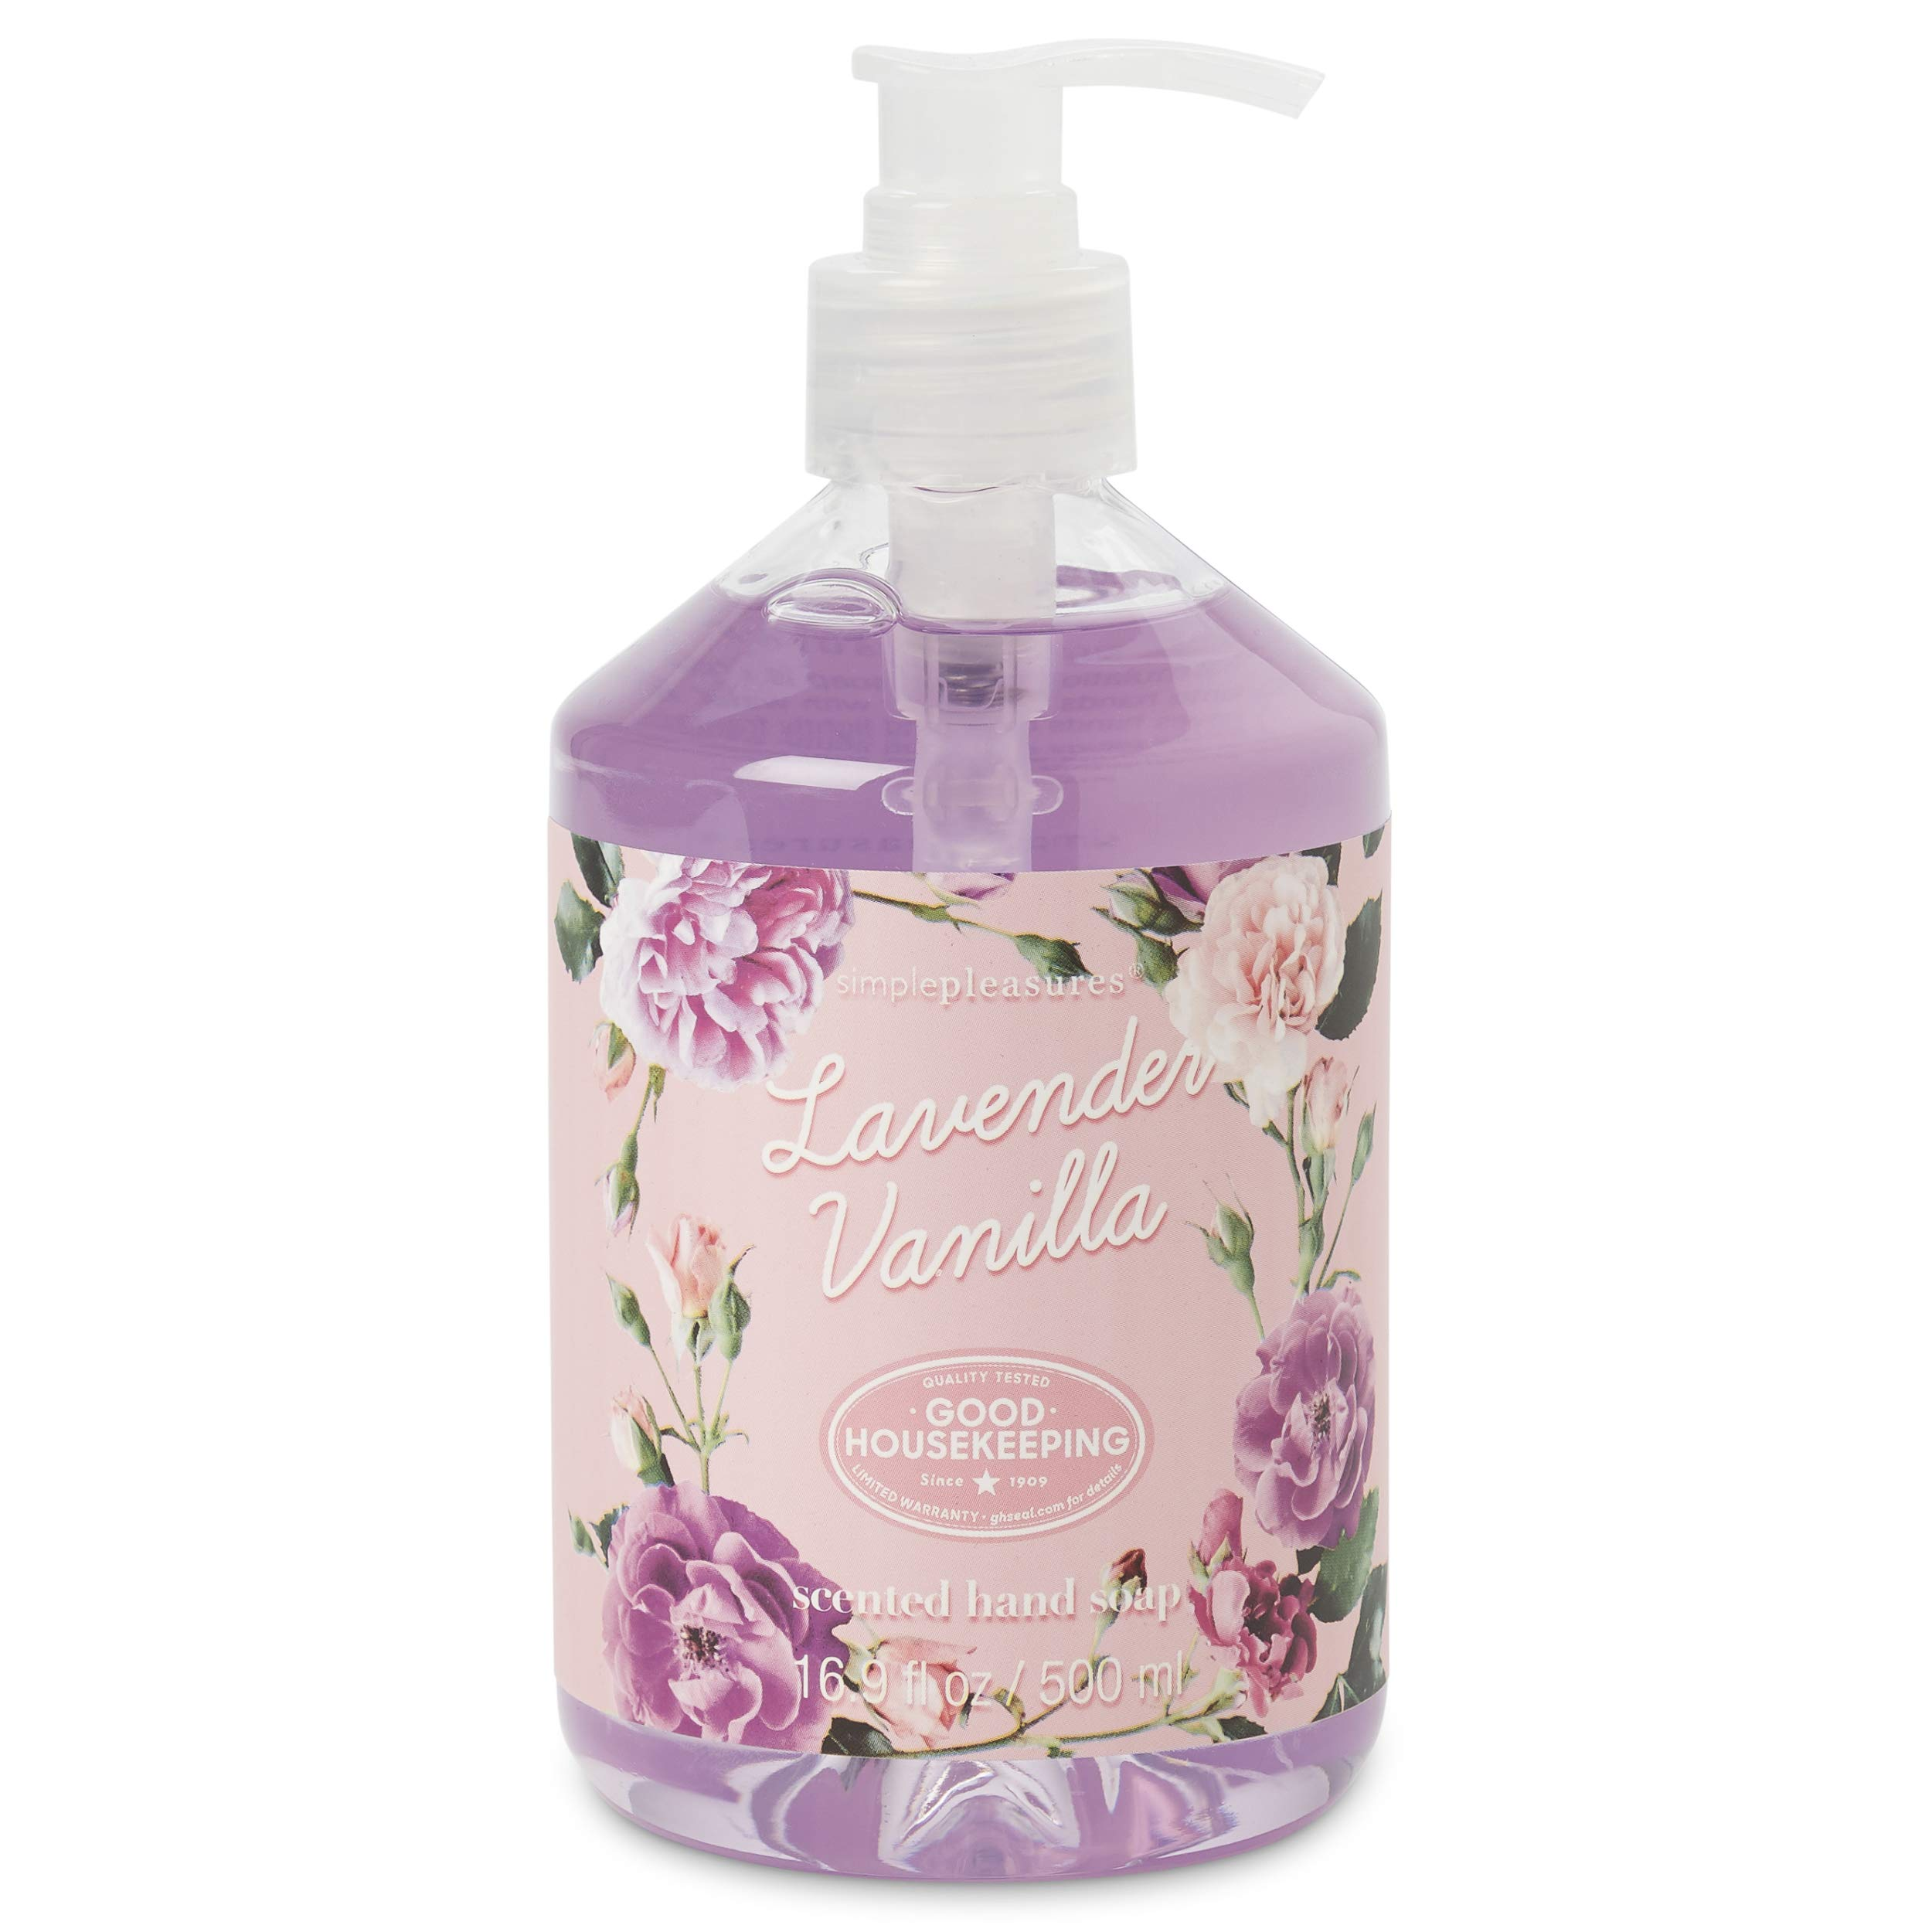 Simple Pleasures Luxury Lavender Vanilla Scented Aromatic Hand Cleanser - Classic Floral Design Hand Soap Dispenser Pump For Bathroom Or Kitchen Countertop - Backed By The Good Housekeeping Seal